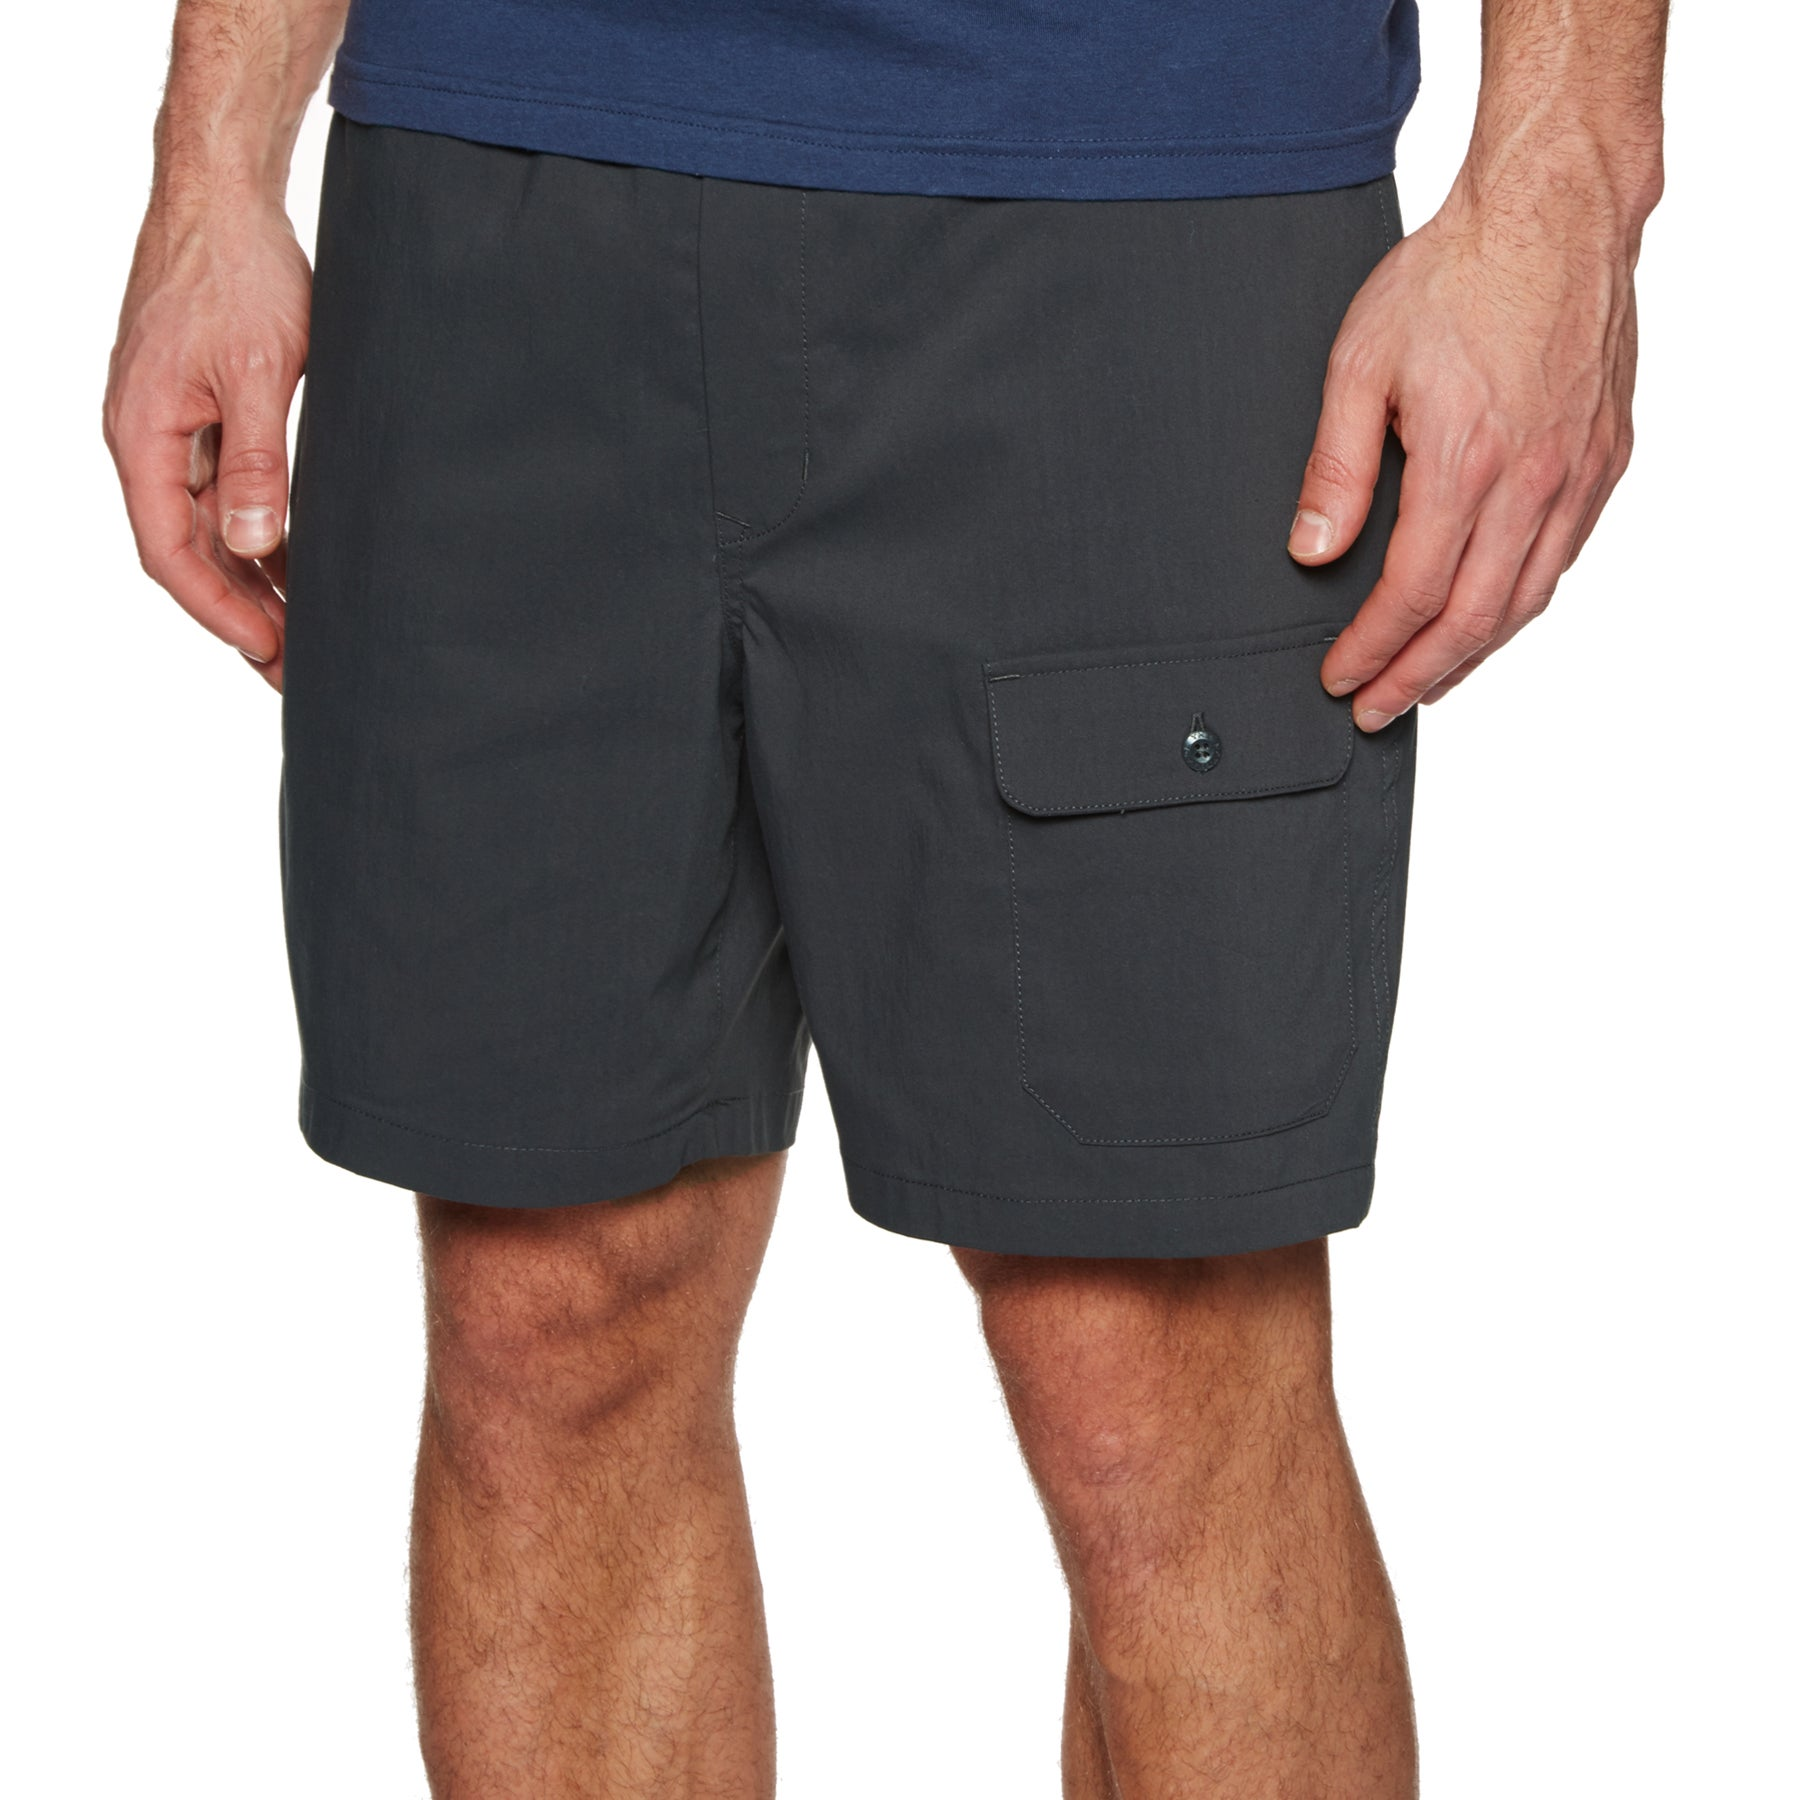 Shorts pour la Marche North Face Seaglass Flashdry - Weathered Black